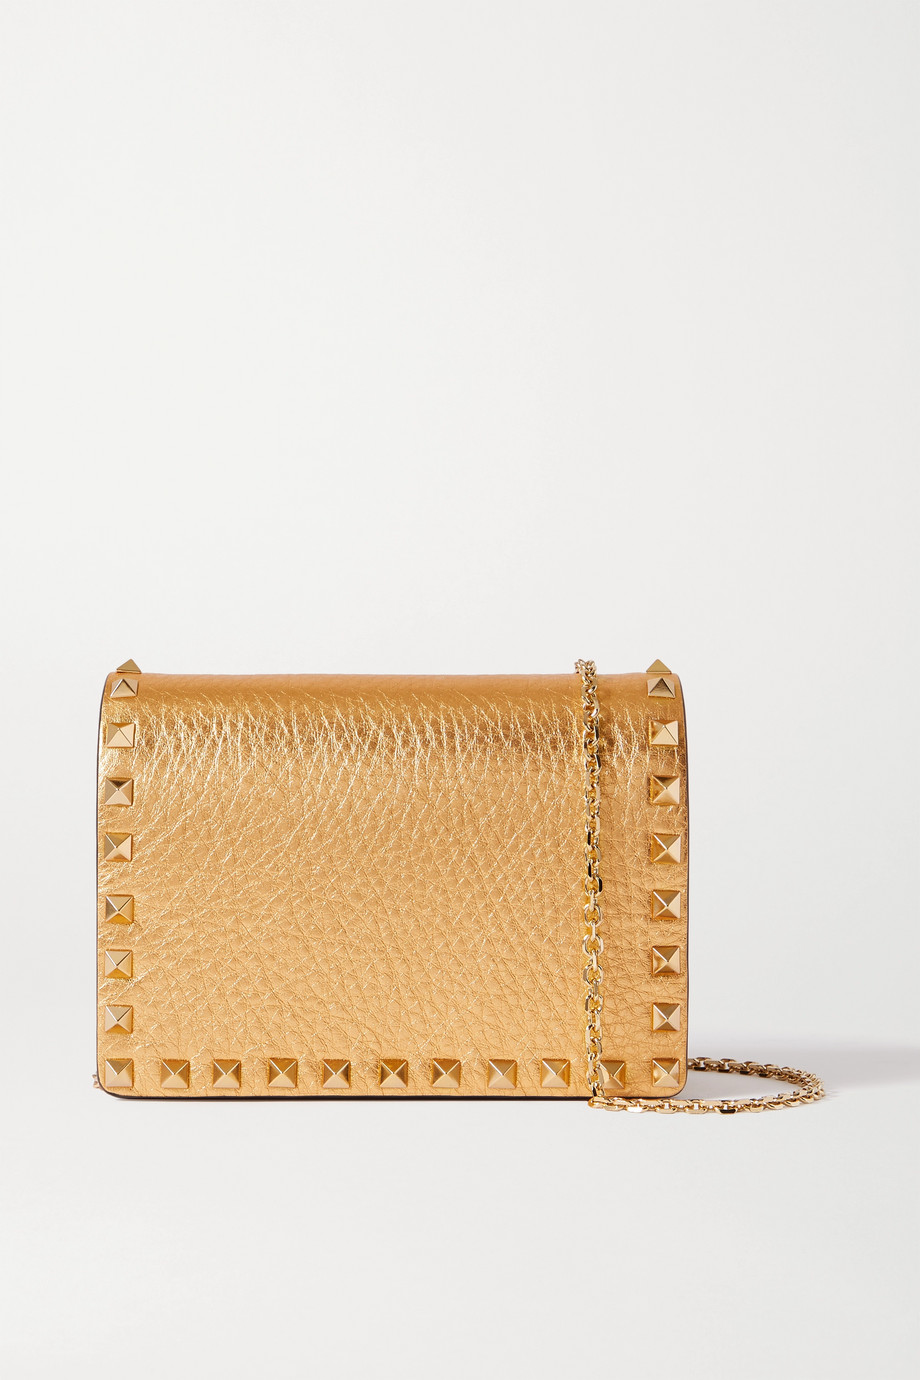 VALENTINO Rockstud metallic textured-leather shoulder bag